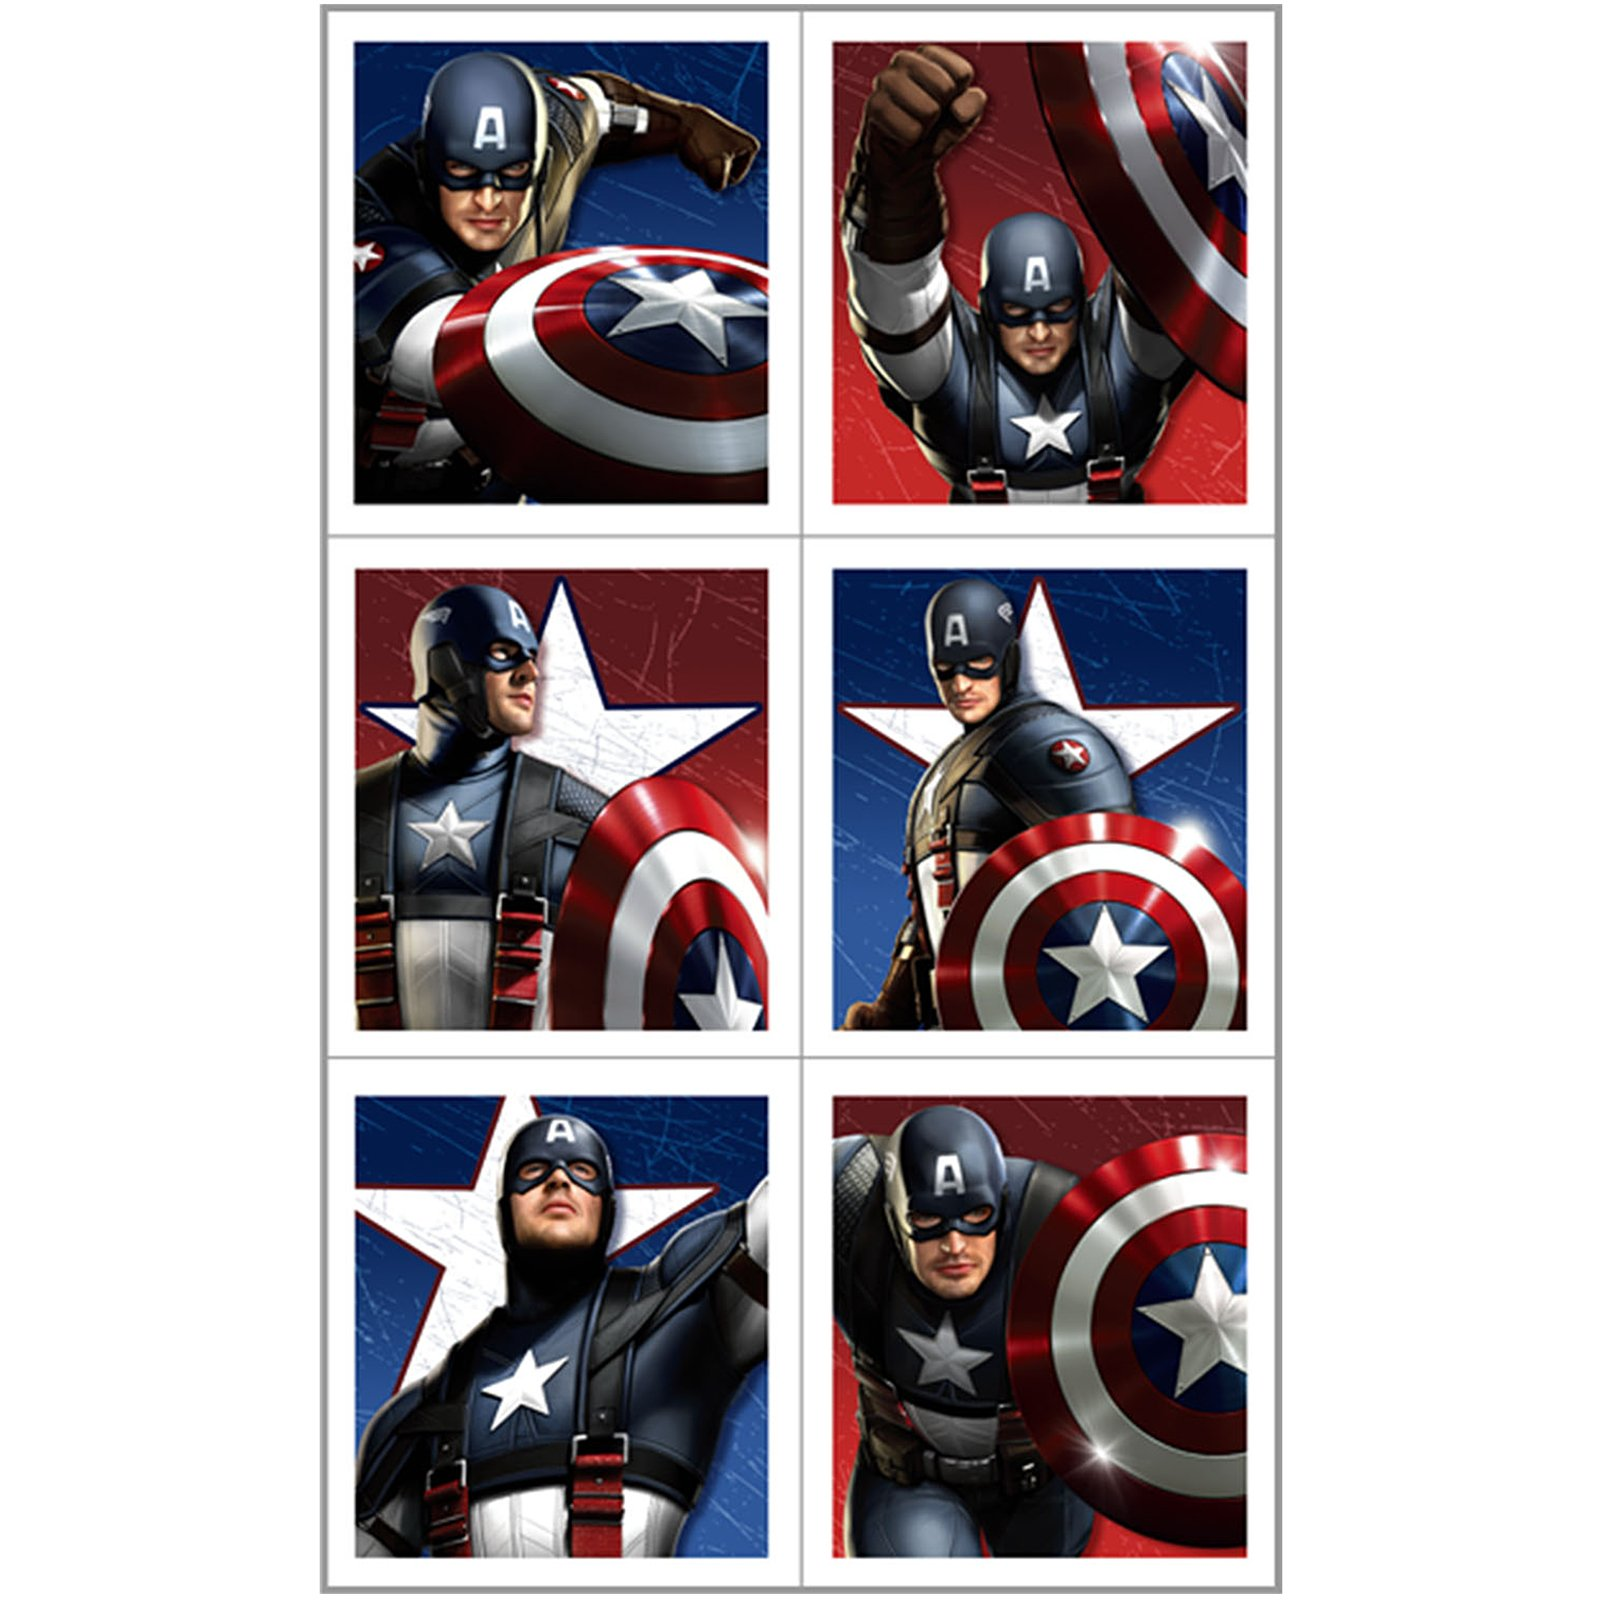 Captain America - Sticker Sheets (4 count)